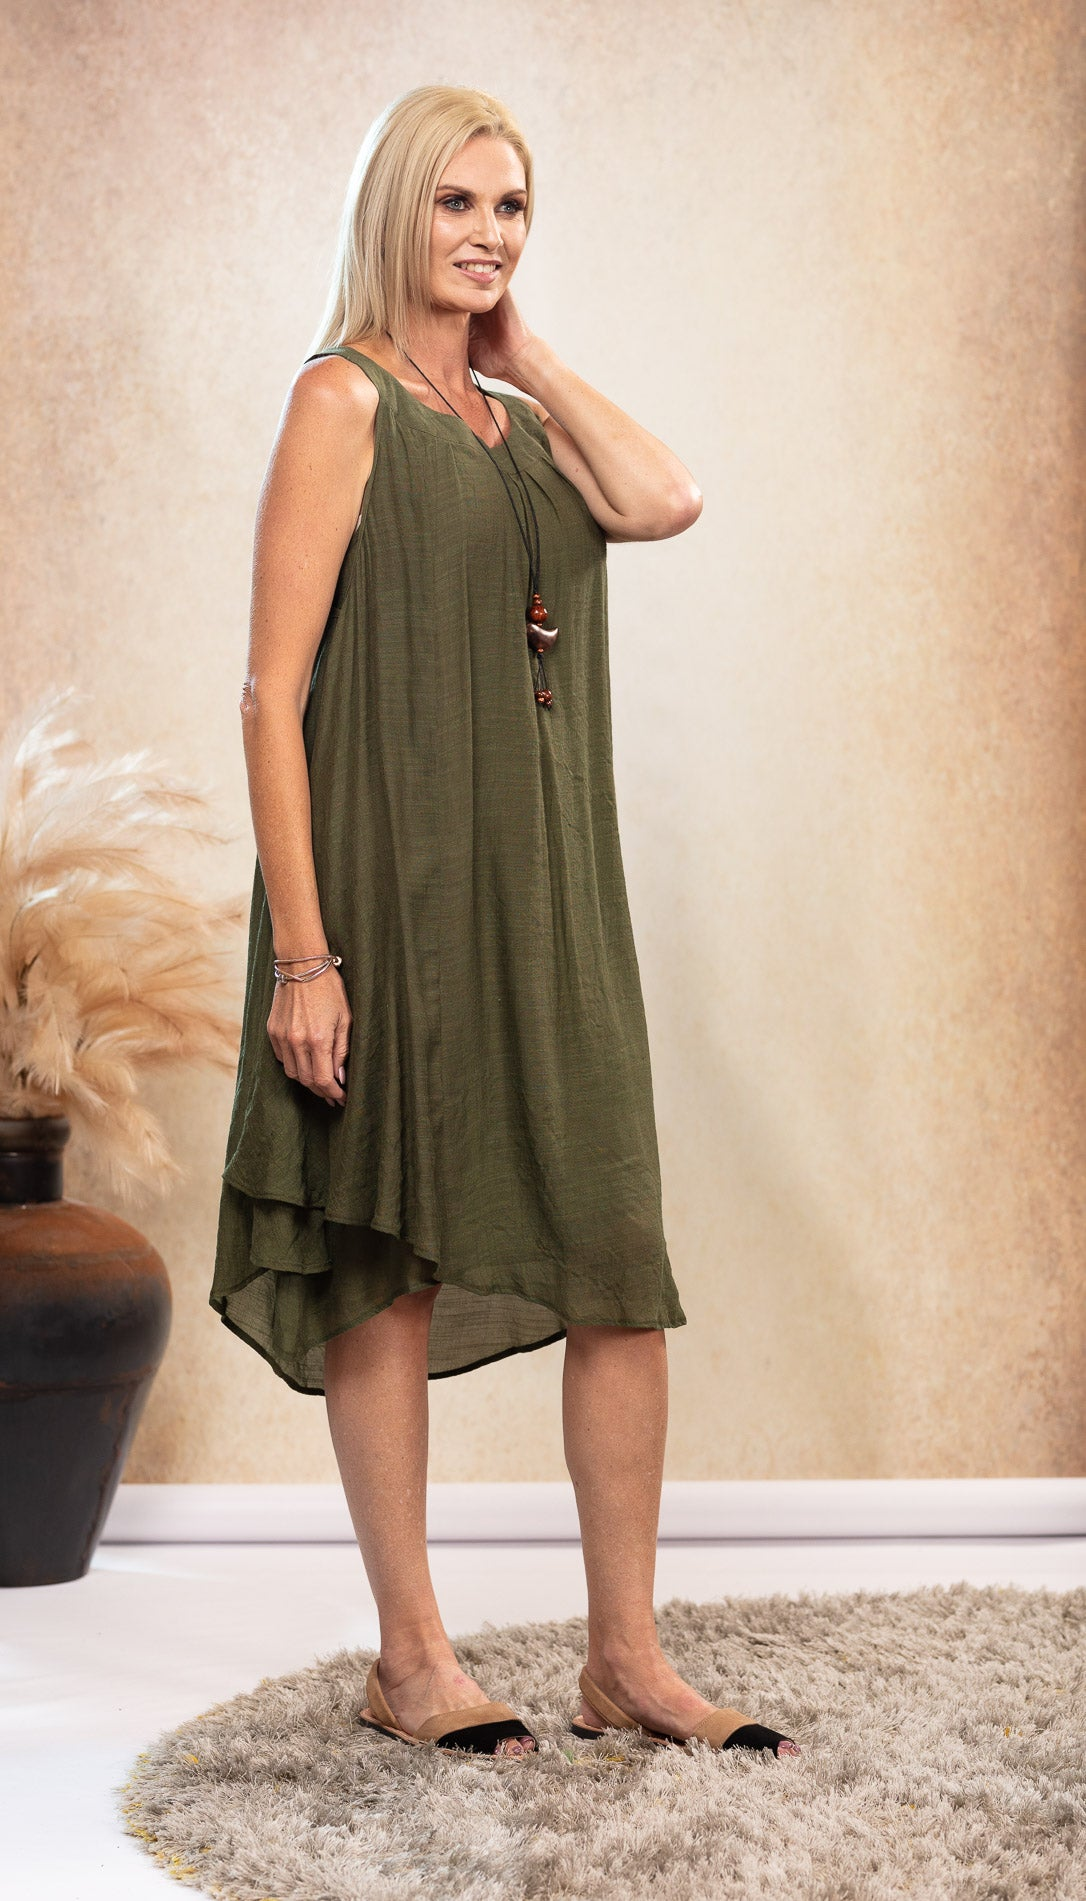 Bamboo Dress in Olive Khaki Green. Black and Taupe Avarca Sandals.